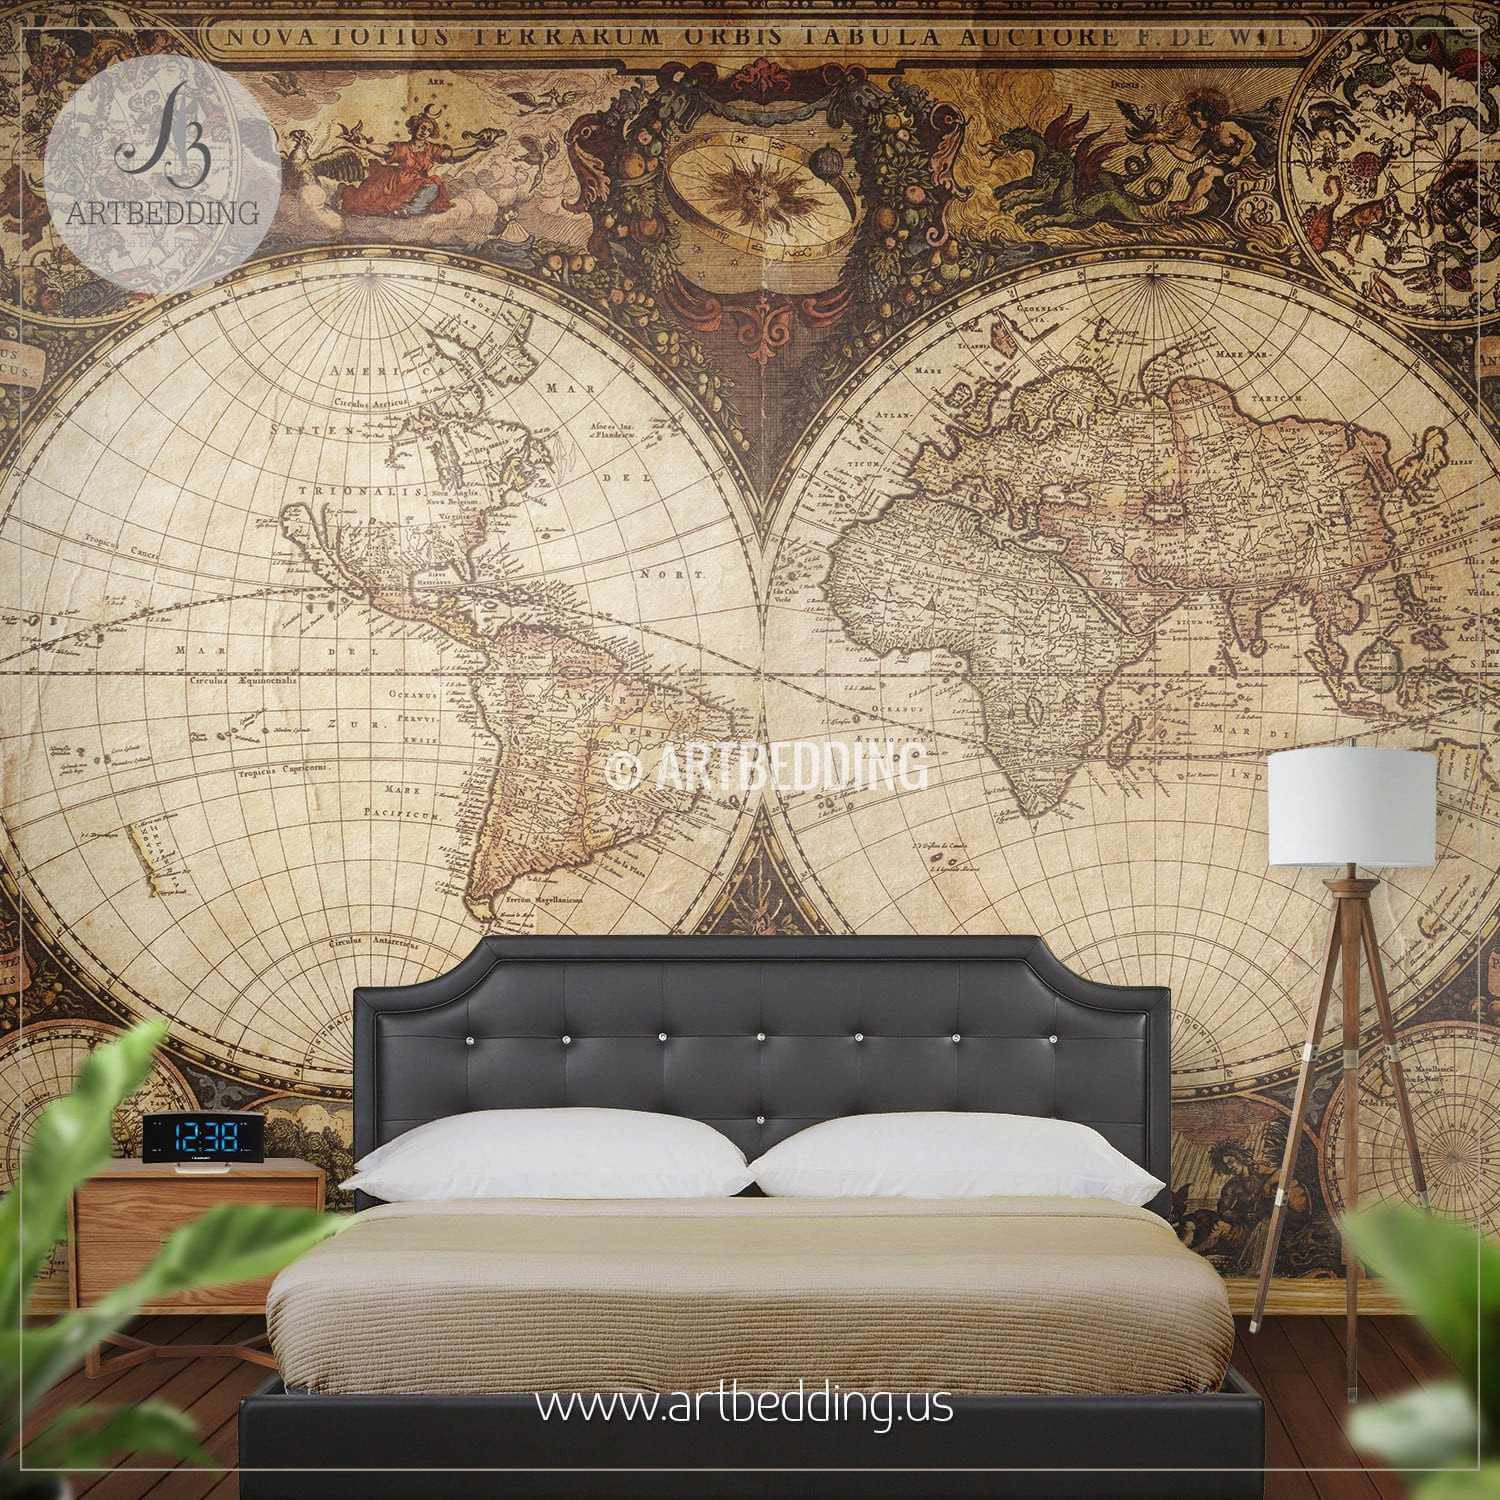 Vintage map wall mural self adhesive photo mural artbedding vintage world map hemisphere wall mural self adhesive peel stick photo mural atlas gumiabroncs Image collections